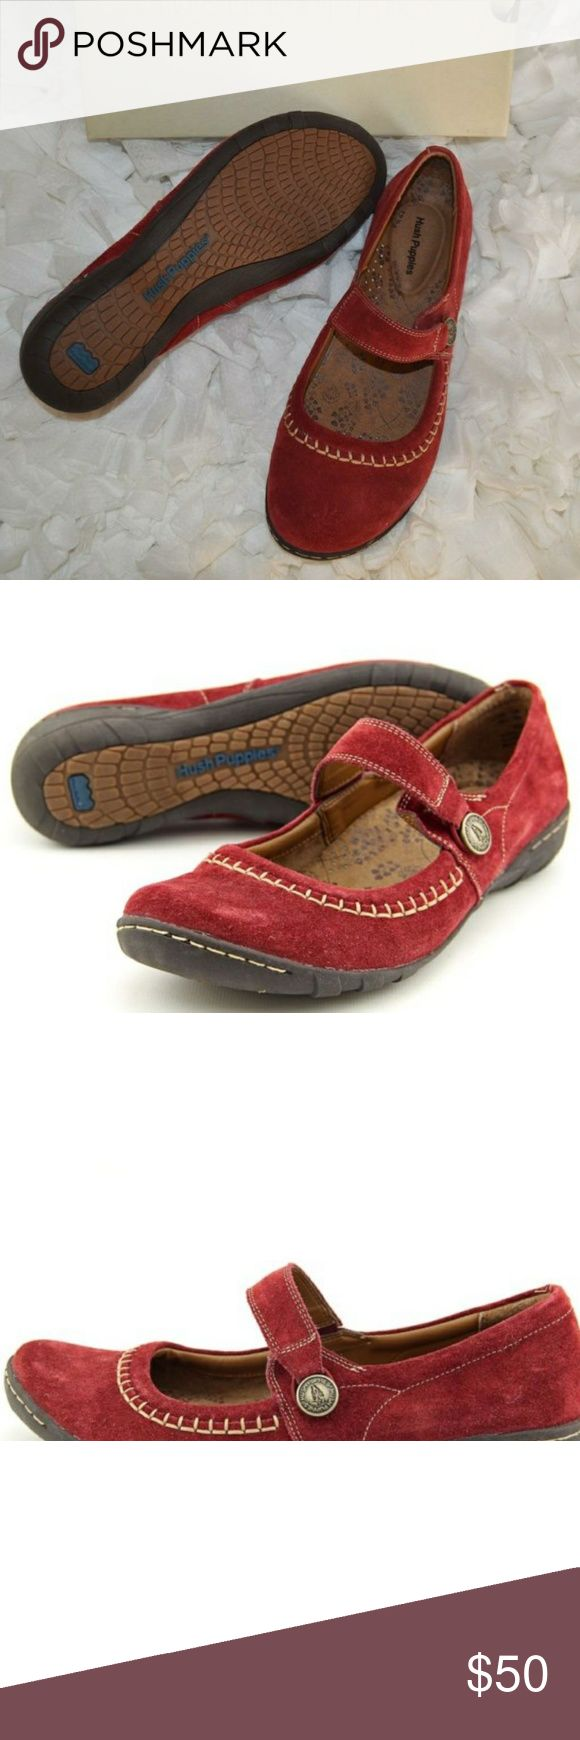 "Hush Puppies Gyneth women slip on loafer New with box. Dark red suede slip on loafers. Heel measures approx. 1.25"". Molded and contoured extra cushioned ethylene vinyl acetate footbed and extra heel foam. Rubber outsole. Hush Puppies Shoes Flats & Loafers"